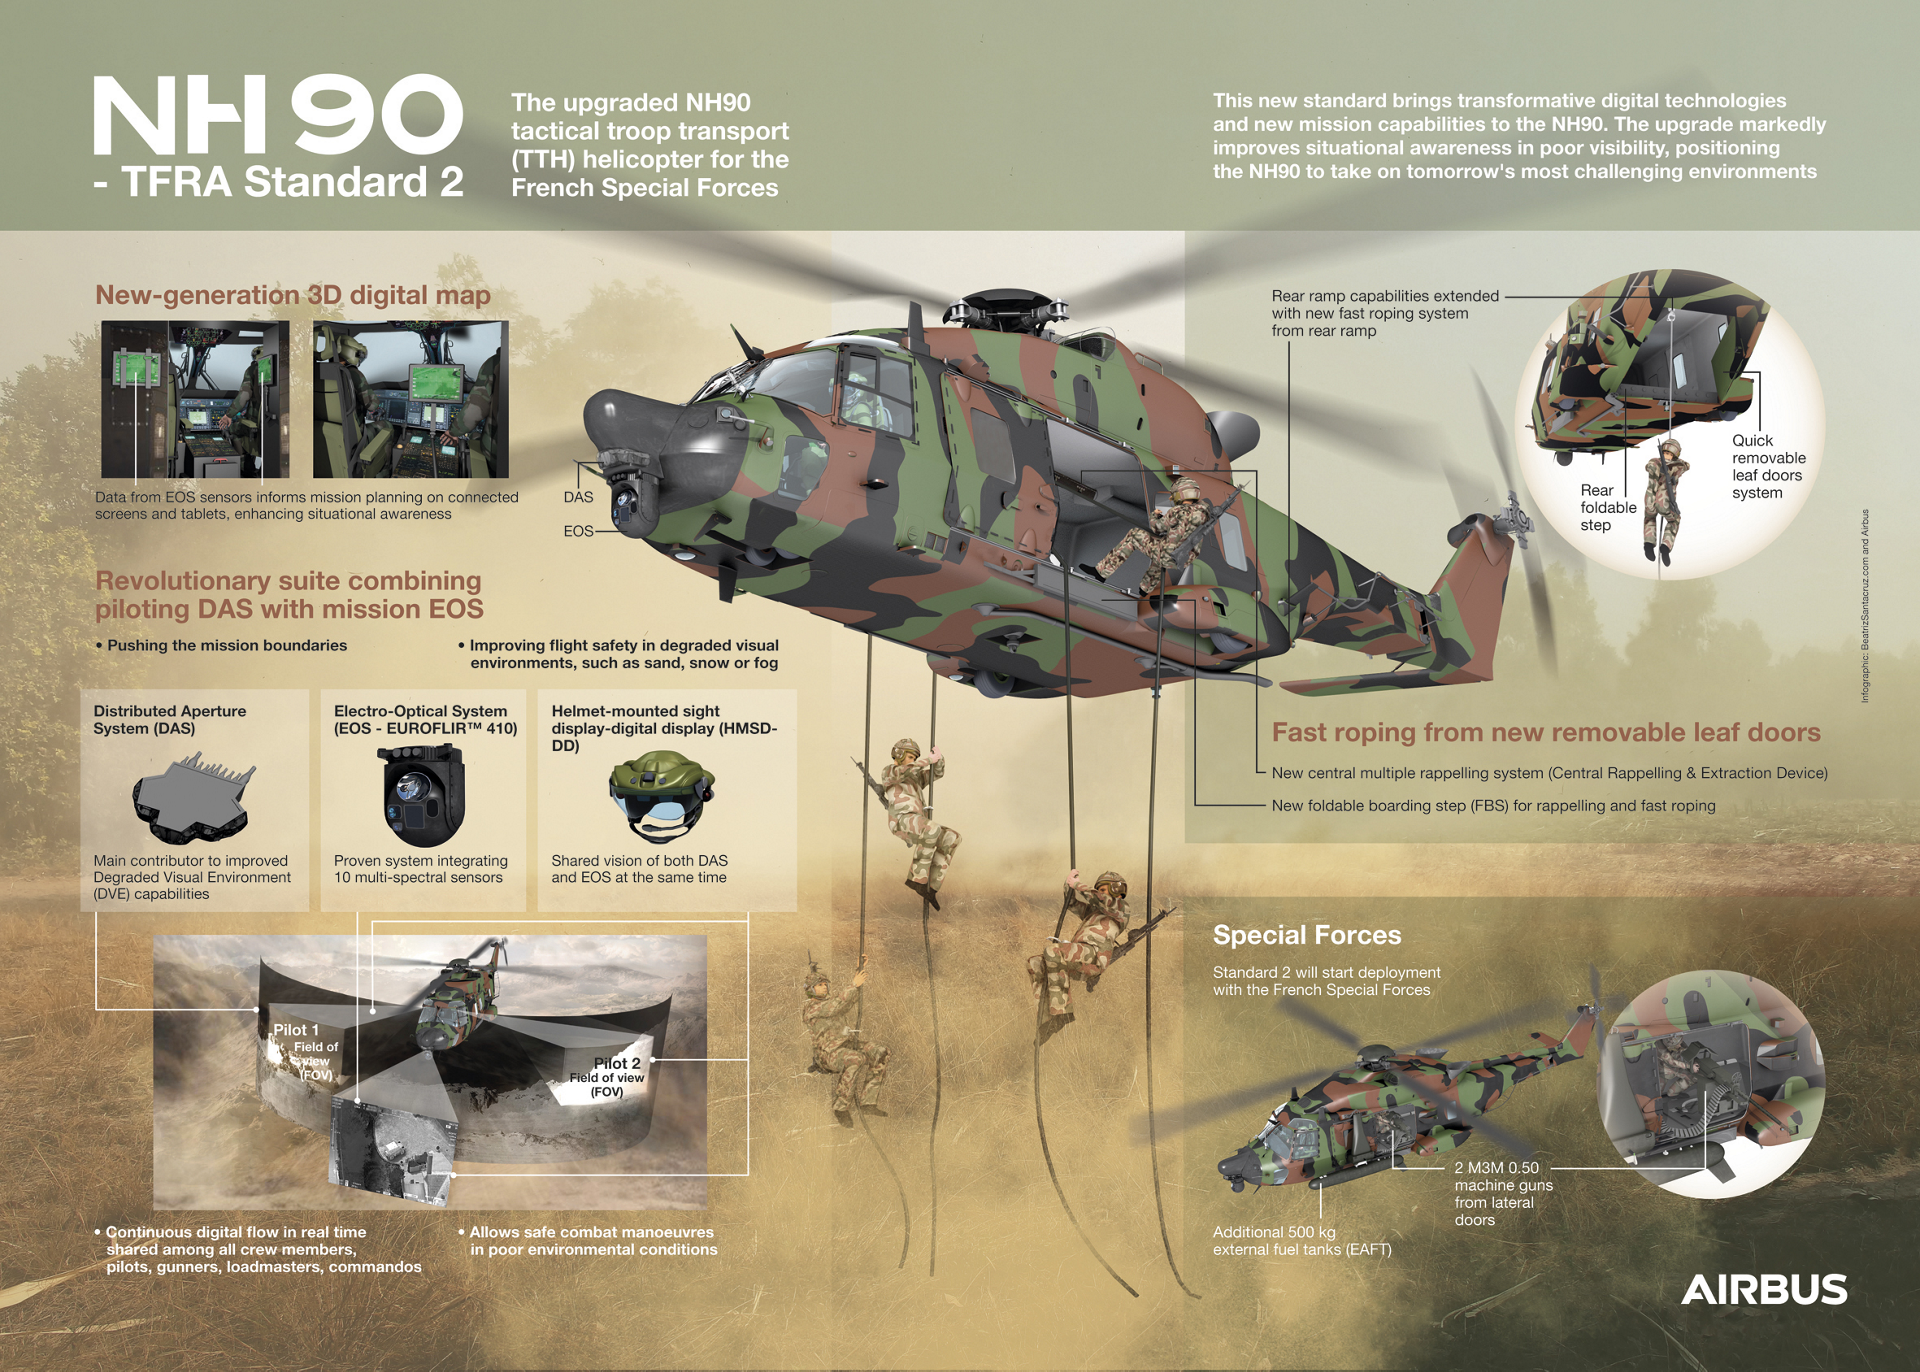 The upgraded NH90 tactical troop transport (TTH) helicopter for the French Special Forces